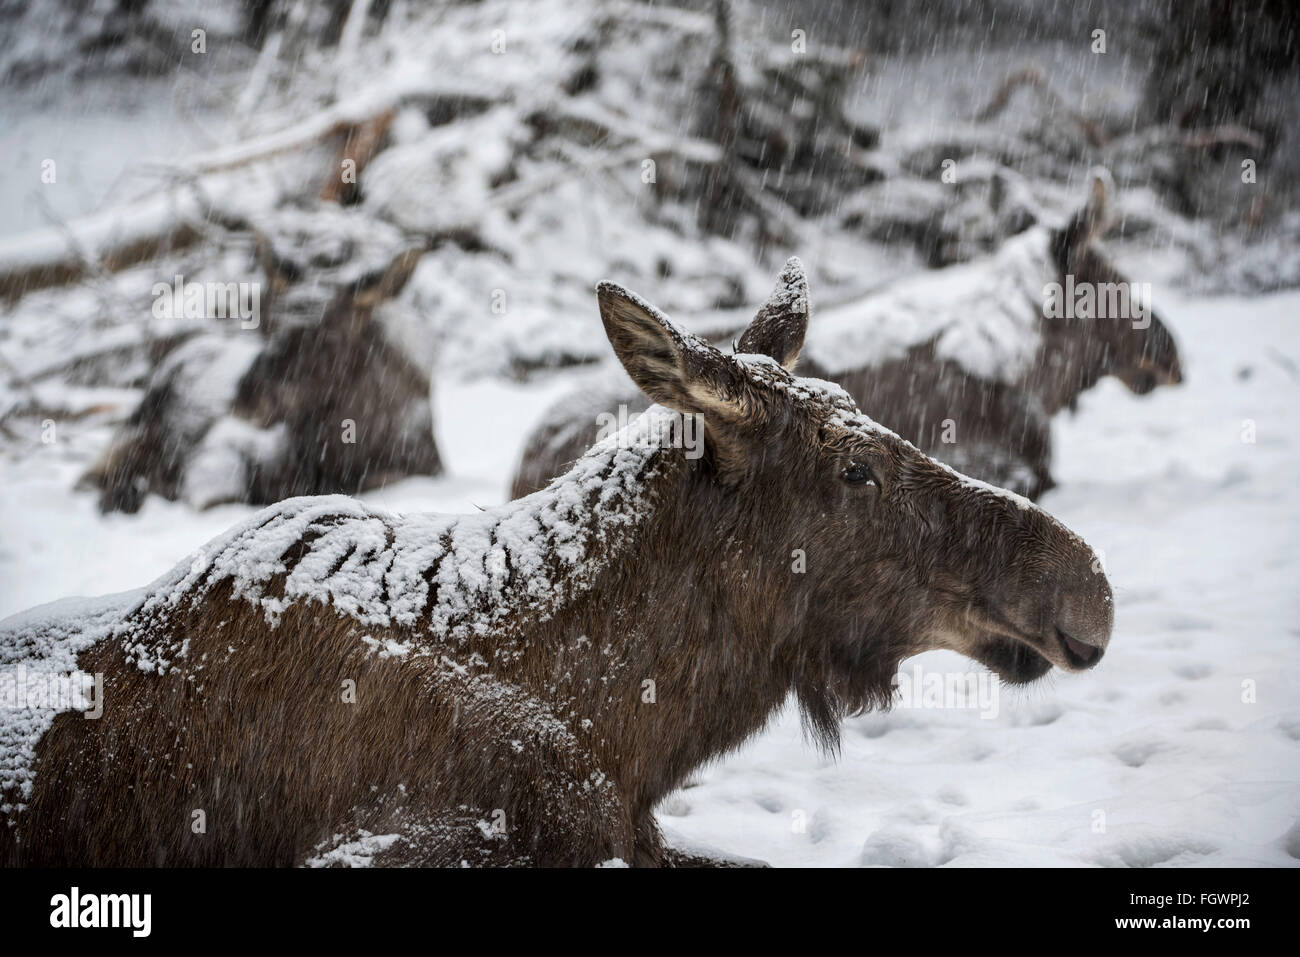 Moose / elk (Alces alces) close up of cow with two calves resting in the snow during snowstorm in winter - Stock Image